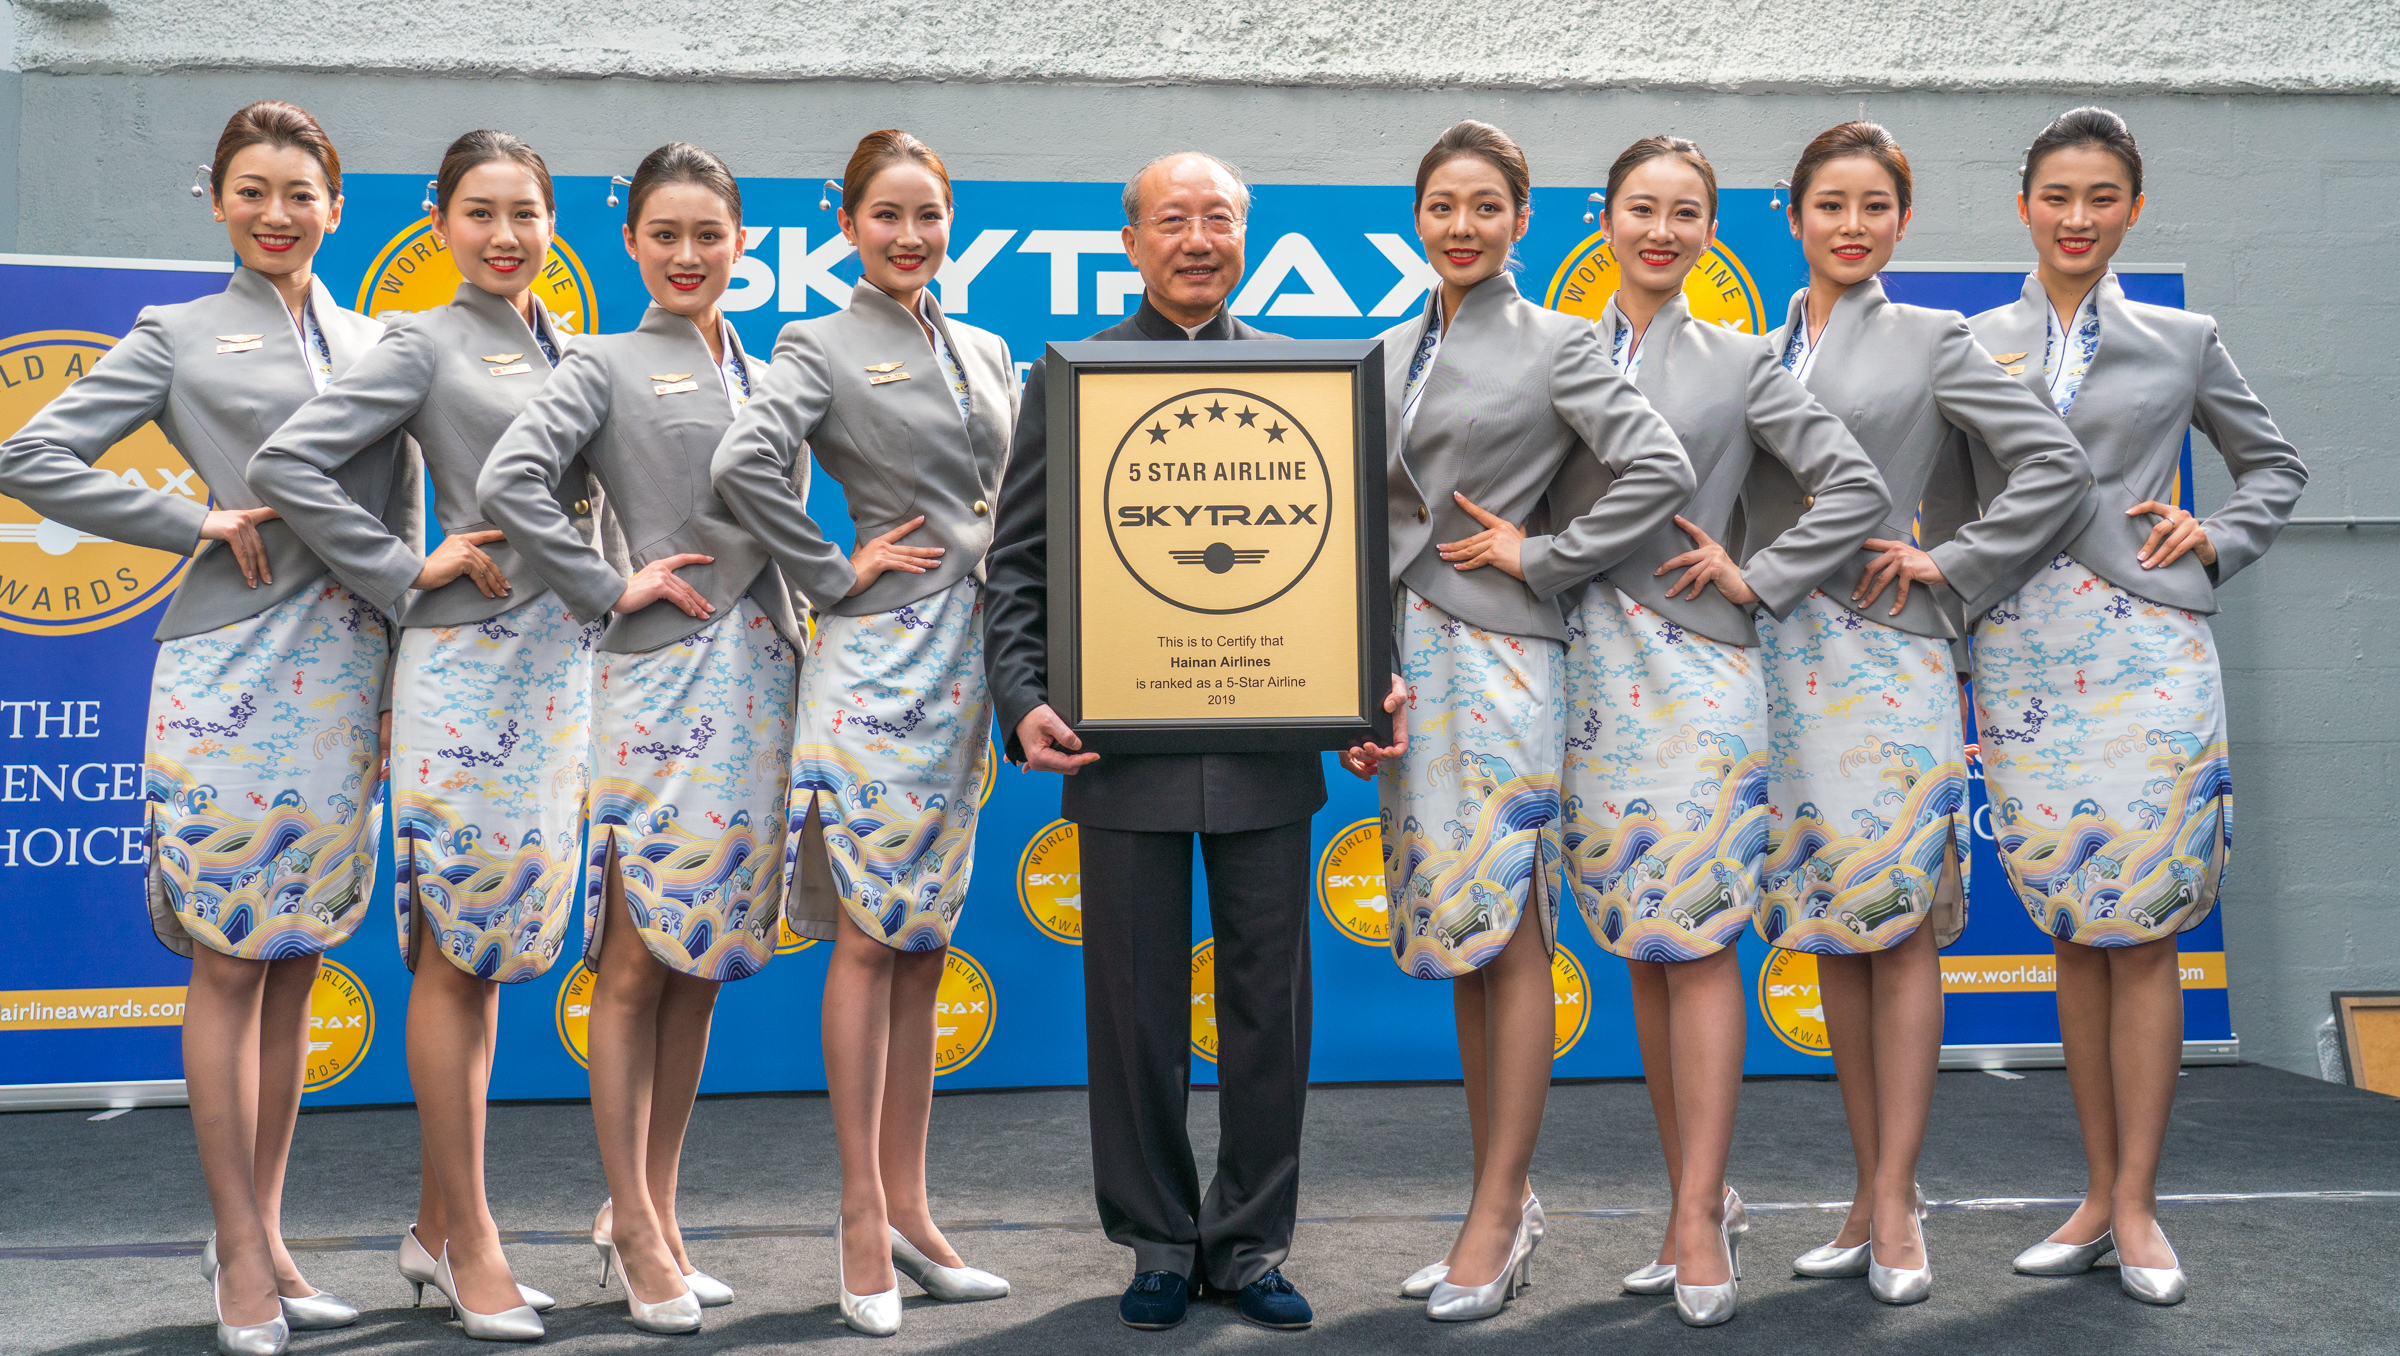 Chairman of HNA Group Chen Feng received the SKYTRAX 5-Star Airline Award at the award ceremony